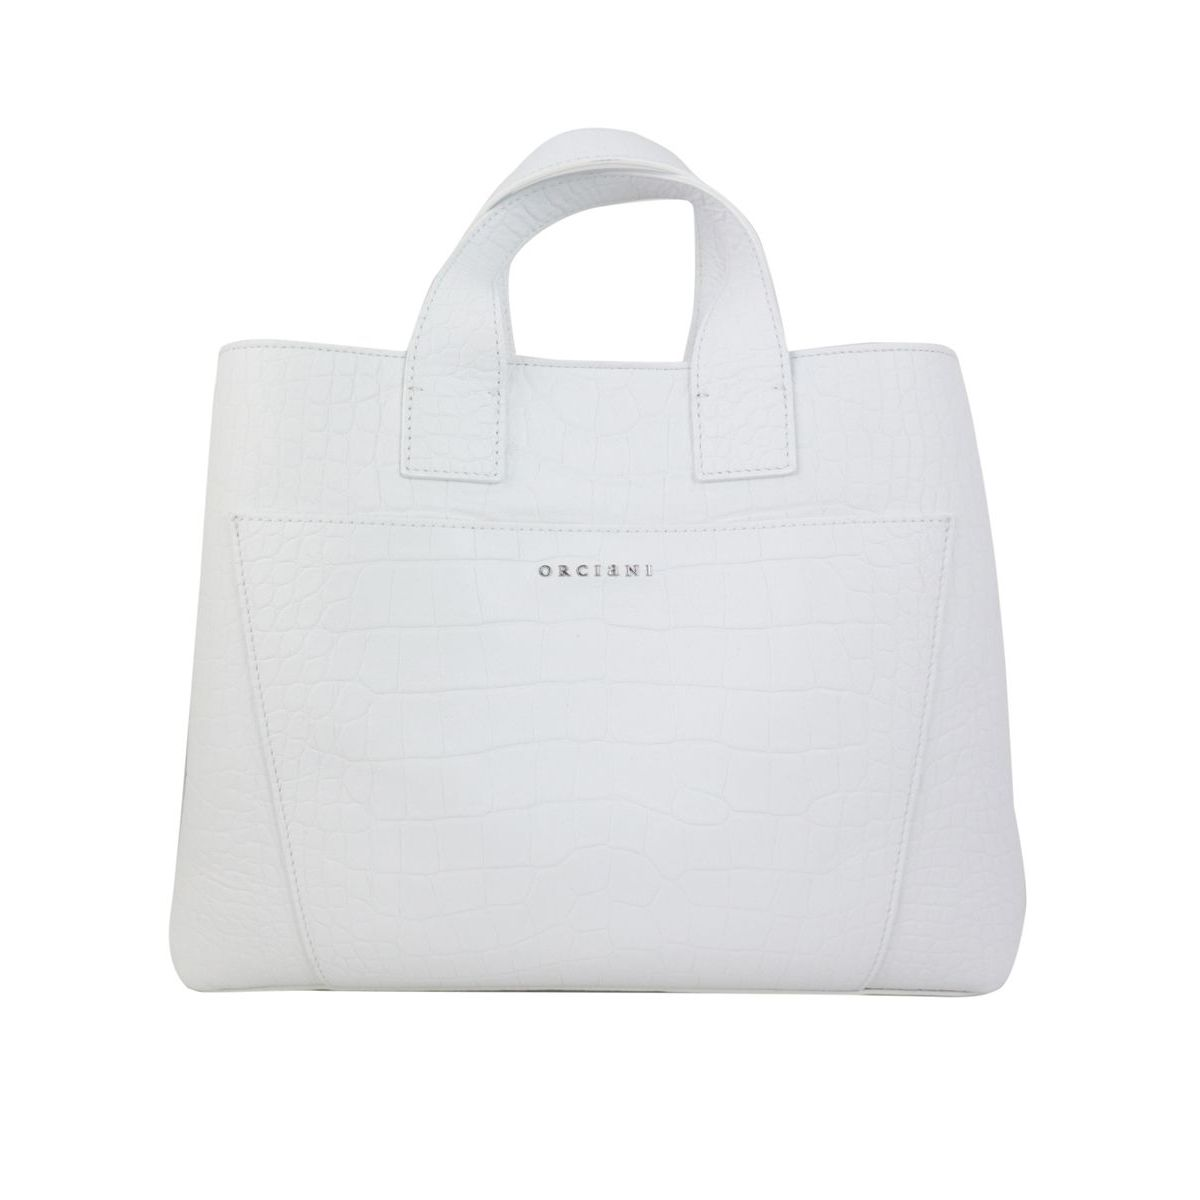 NORA bag in KINDU leather White Orciani